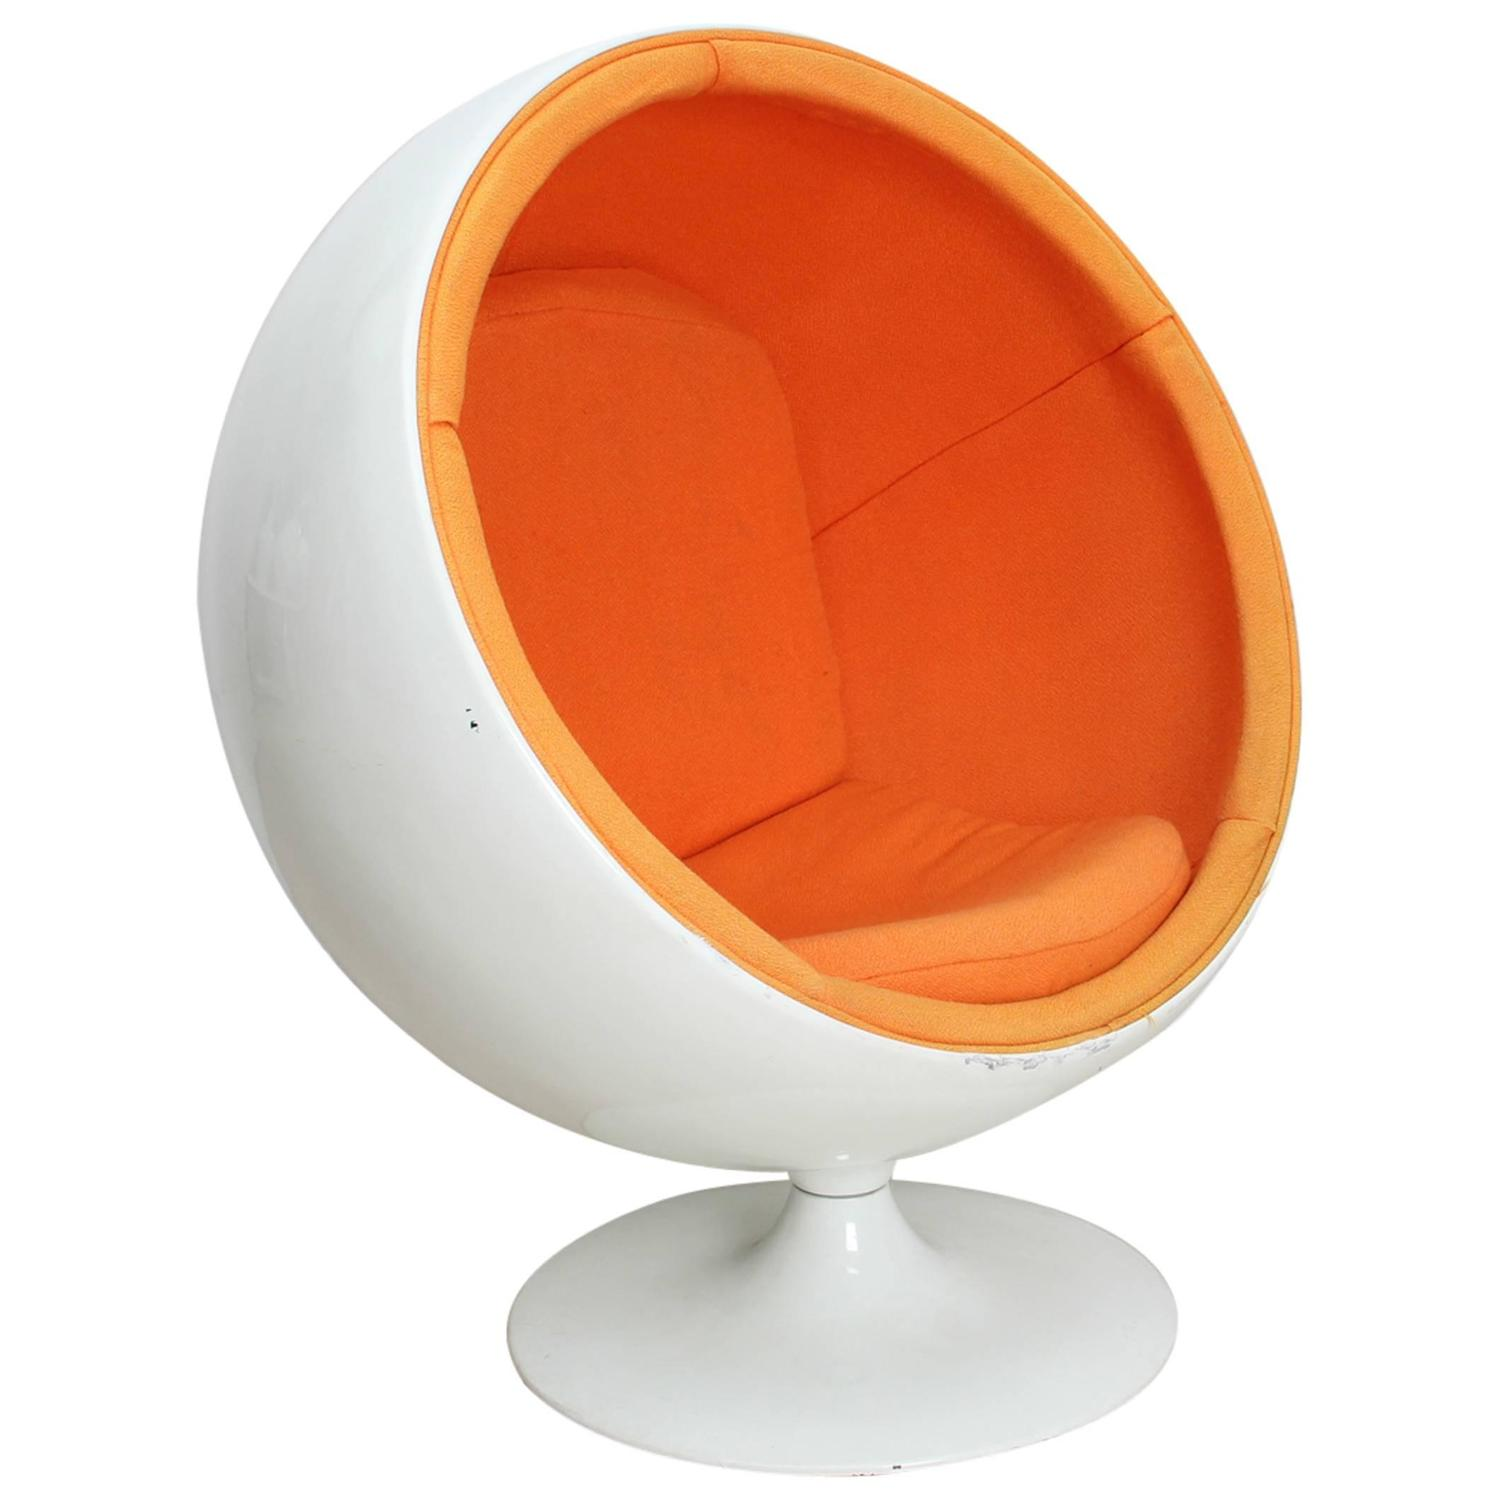 Child Egg Chair Ball Chair For Kids By Eero Aarnio Ed Adelta 1963 For